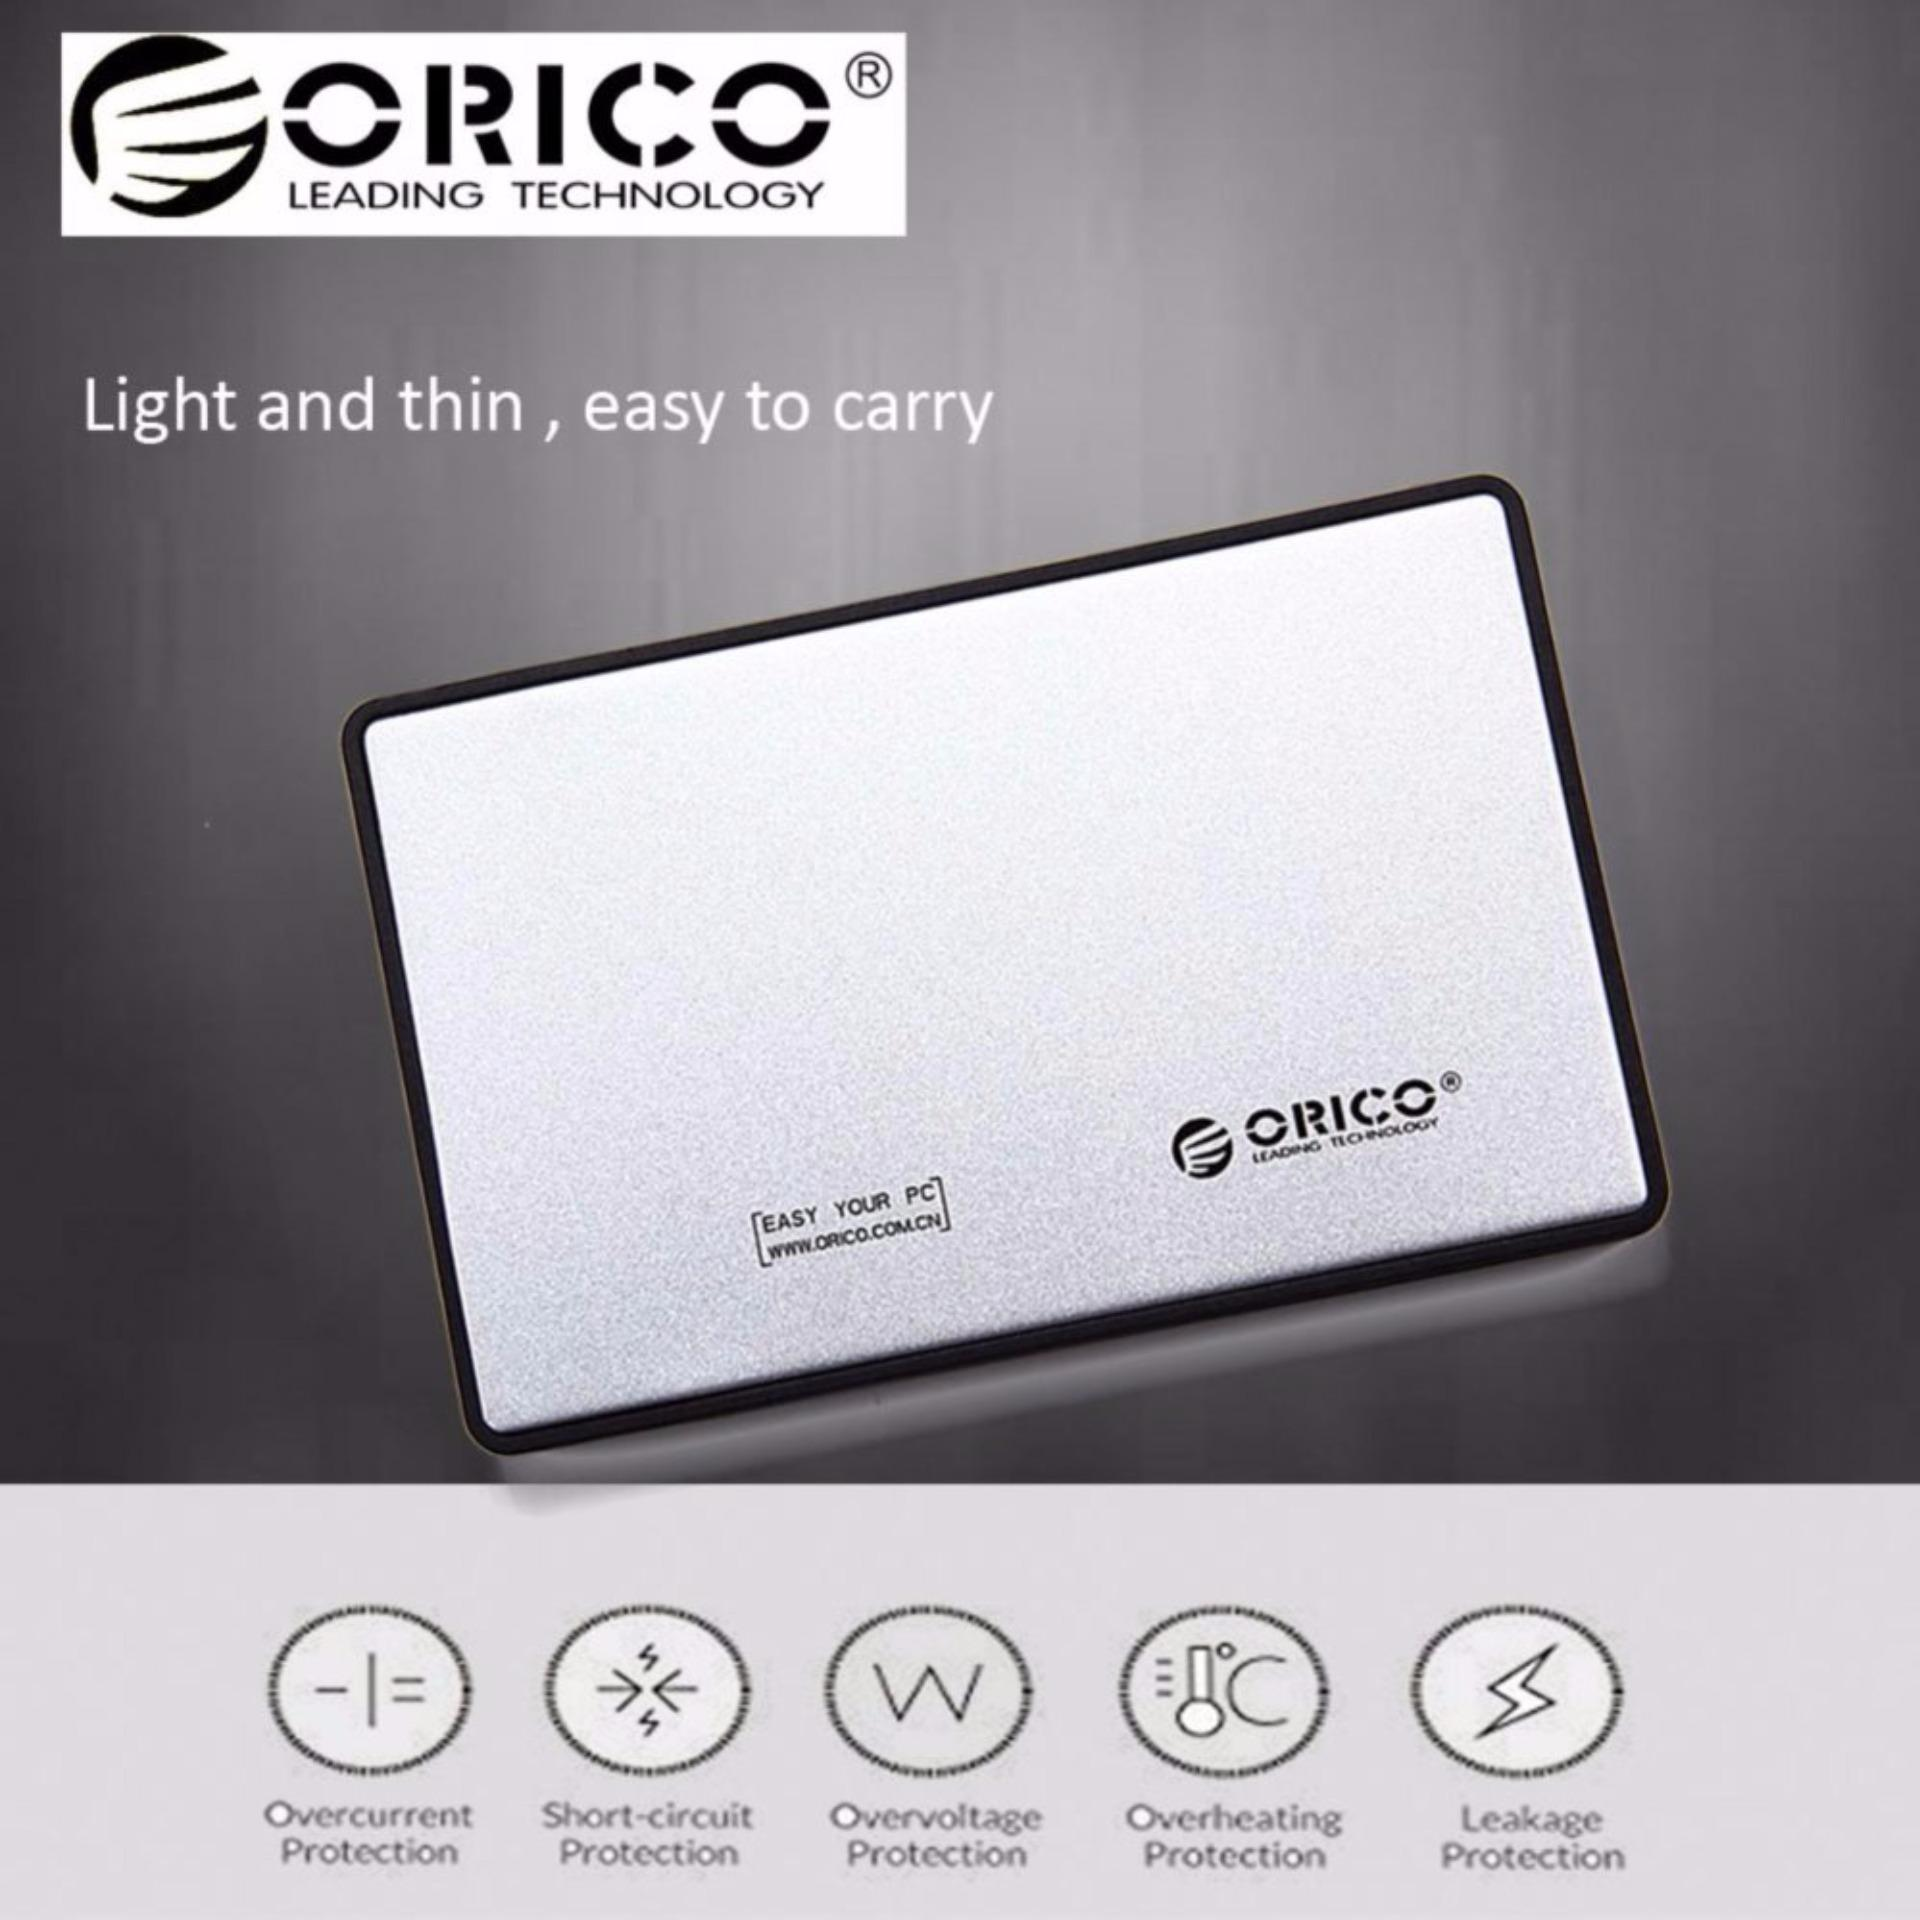 93 25 Hard Drive Enclosure Sabrent Hdd Picture 1 Orico 2588us3 Harddisk Inch Portable Super Speed Usb 30 Usb30 External